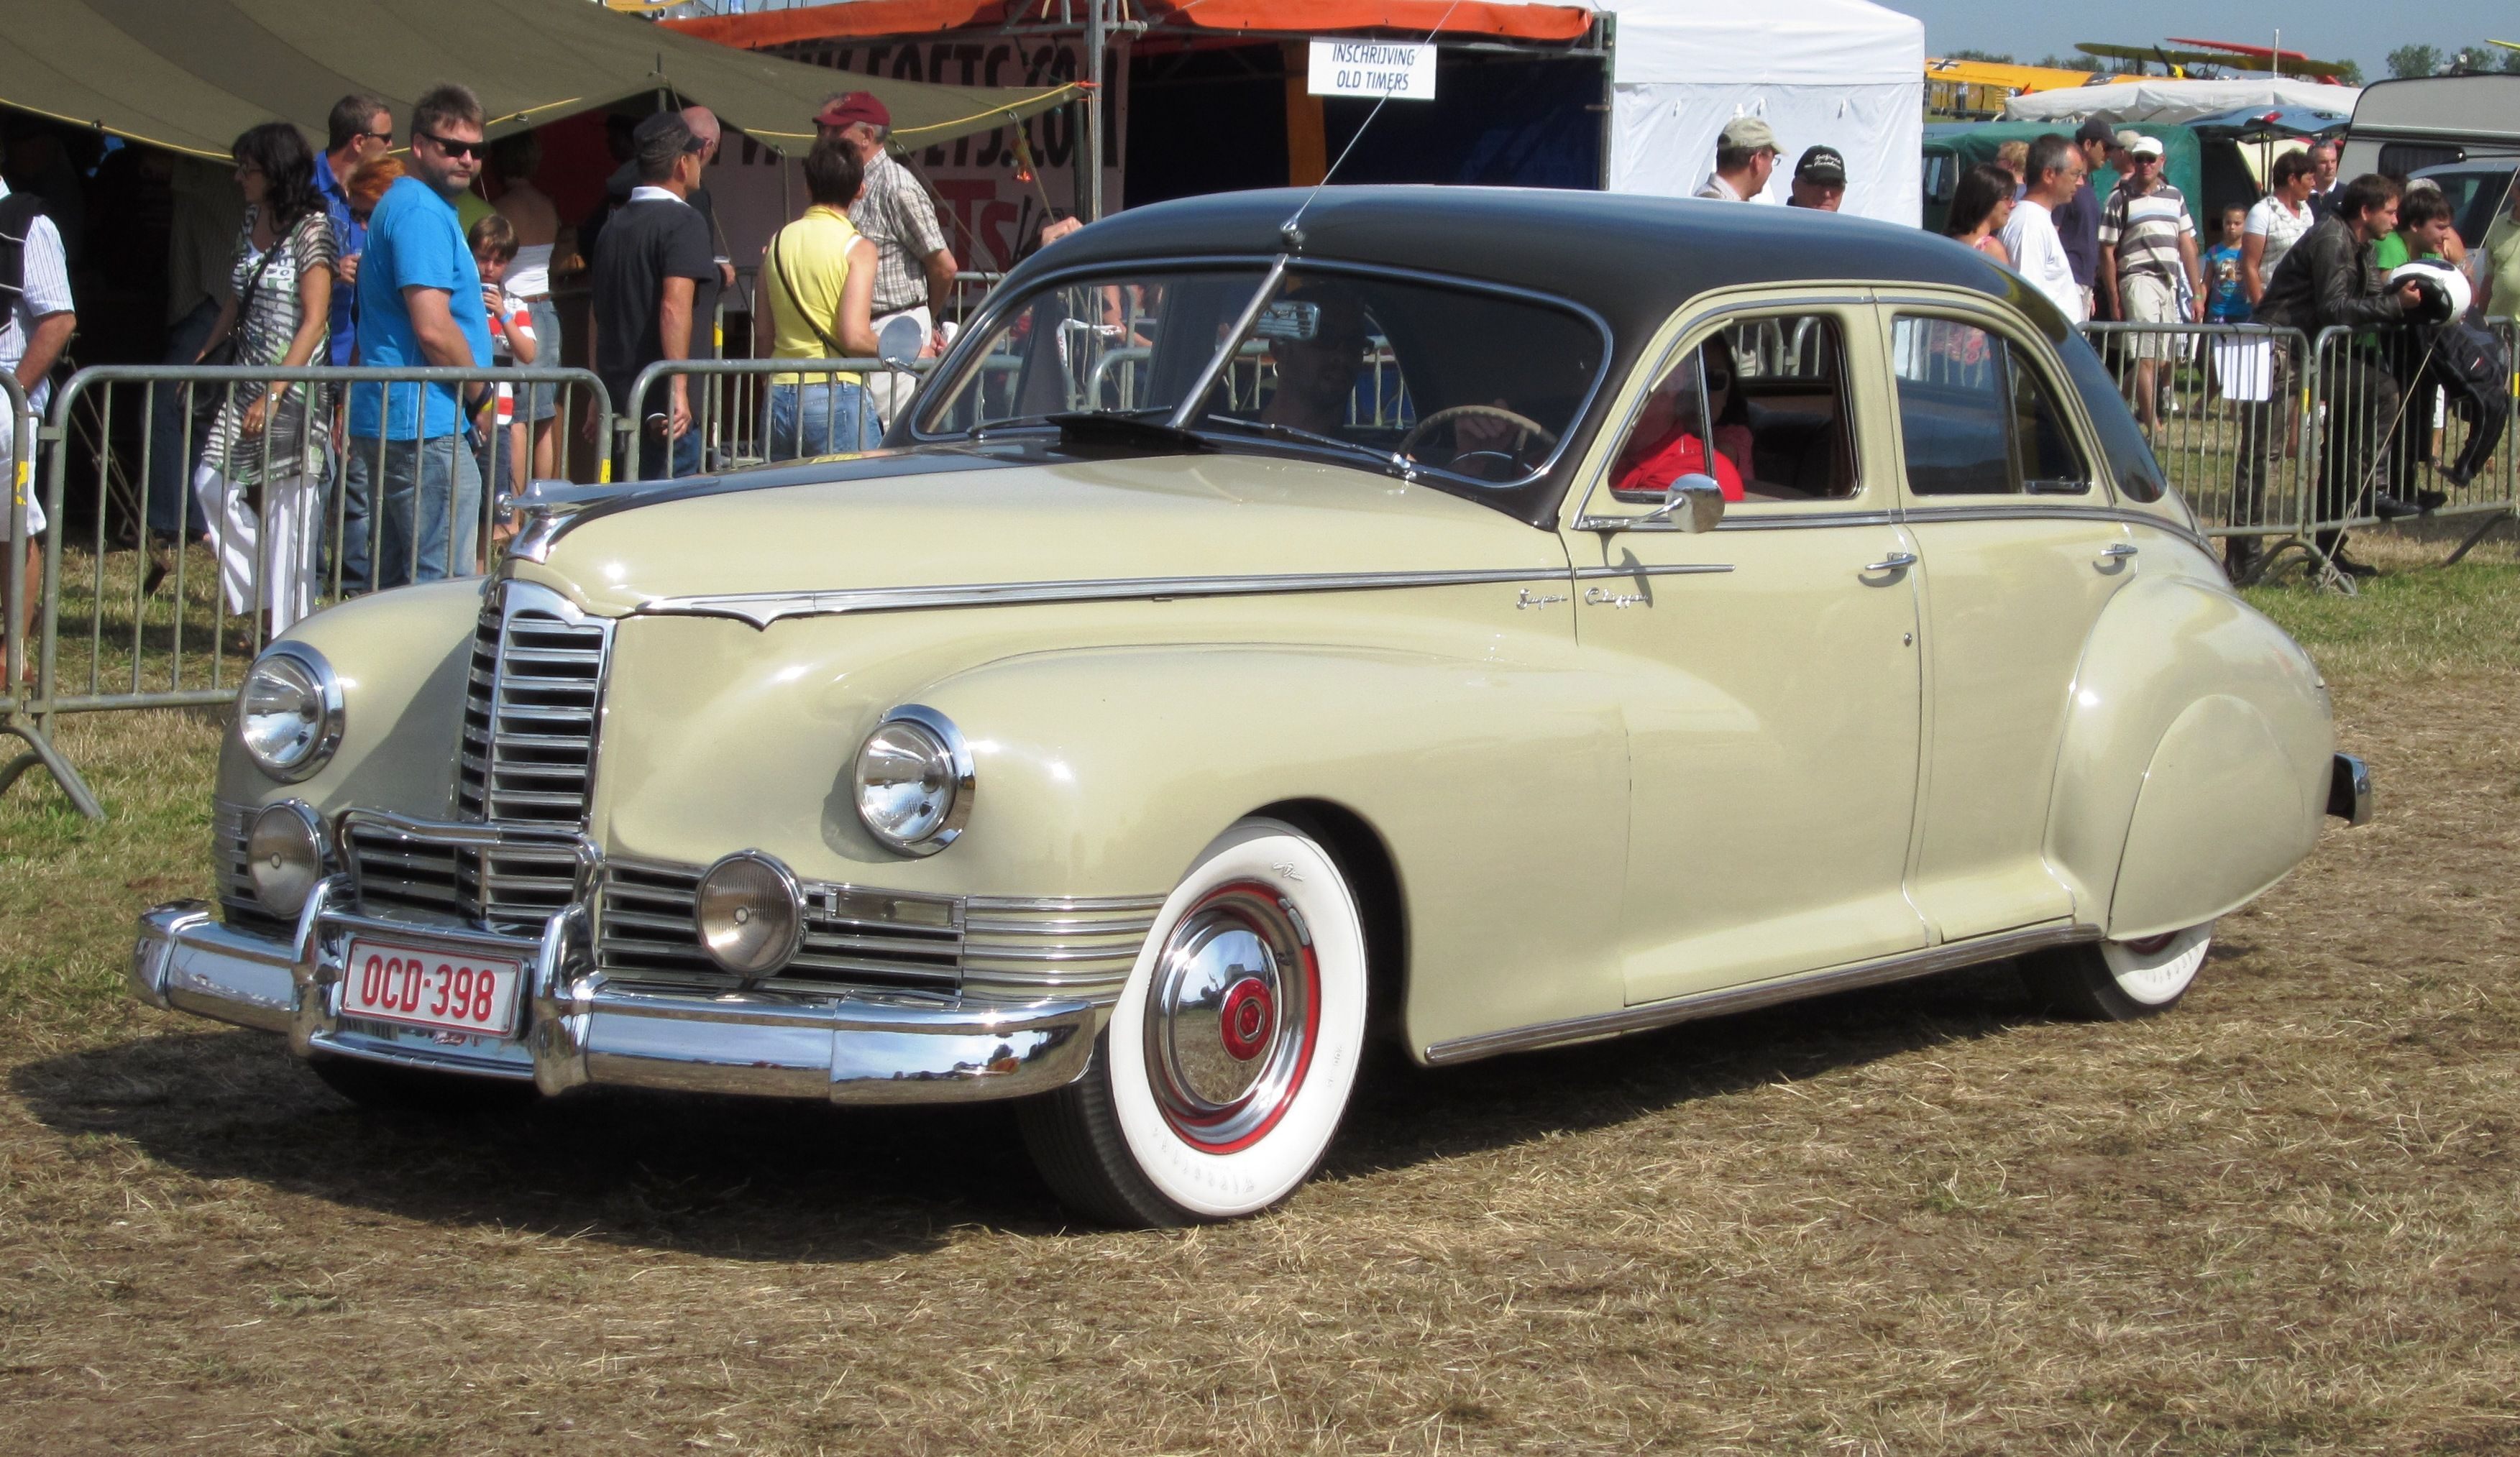 Packard | File:Packard Clipper ca 1947 in Belgium.jpg - Wikipedia ...